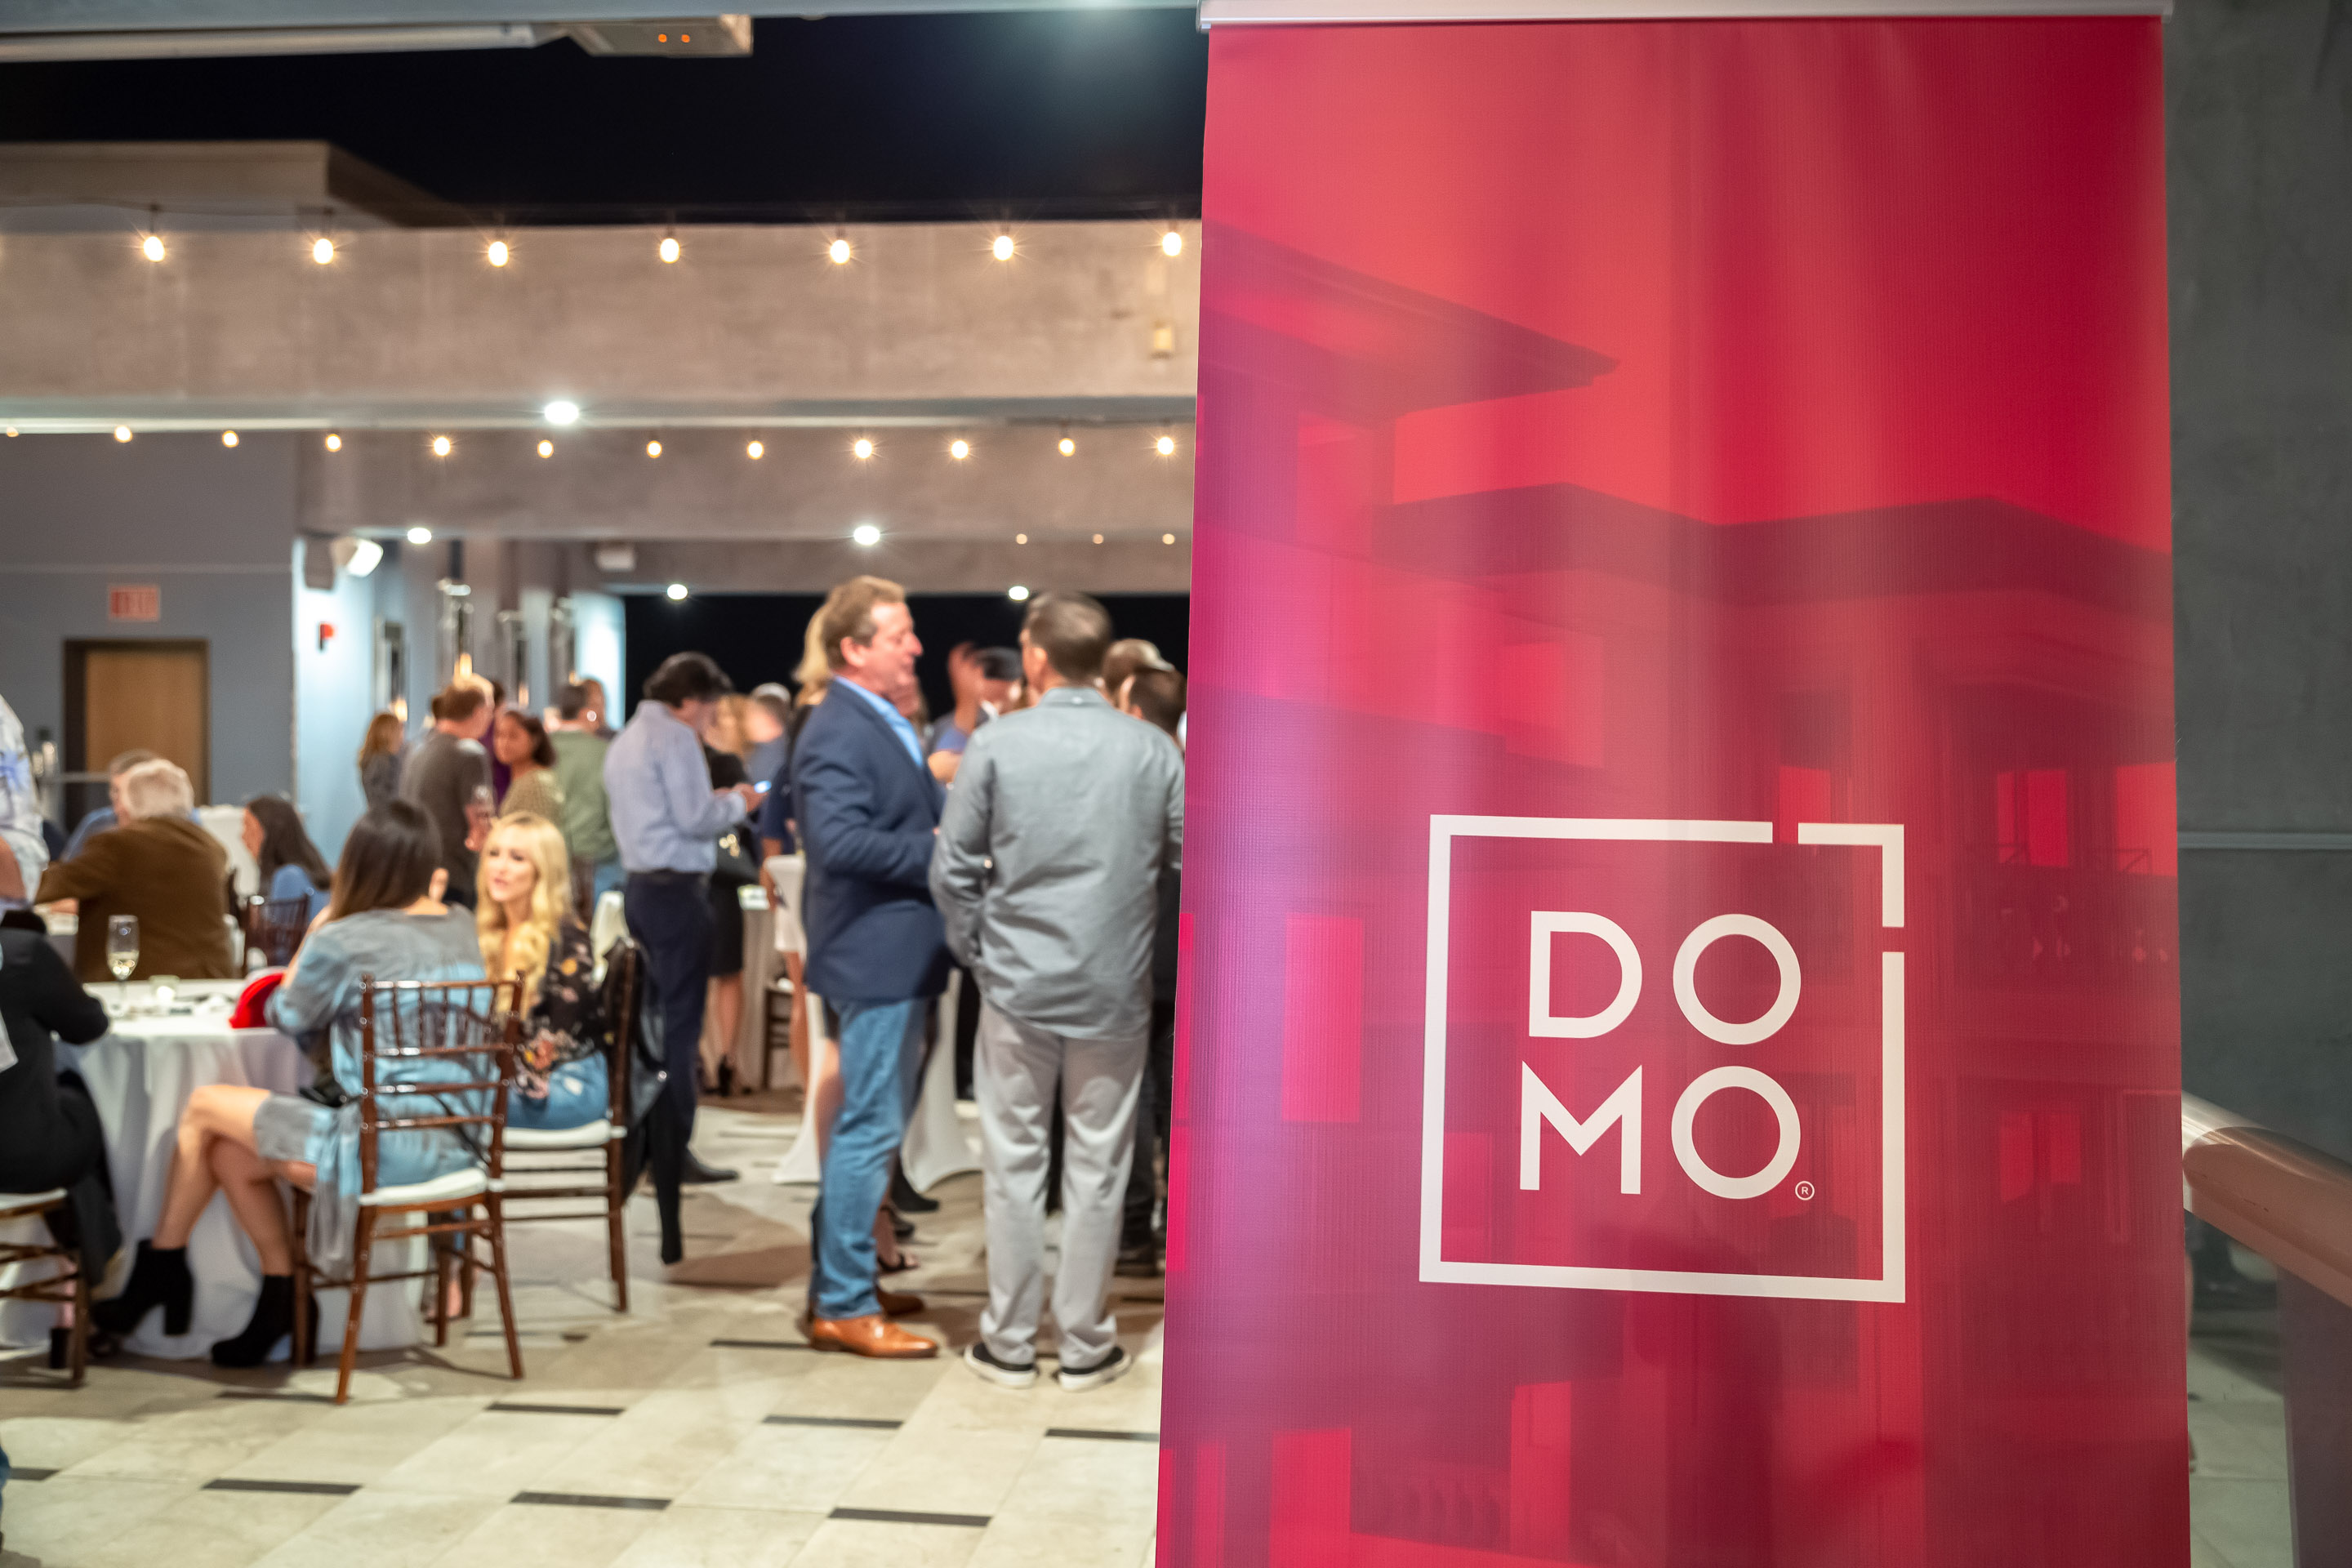 domo, domo group, greg geilman, rob freedman